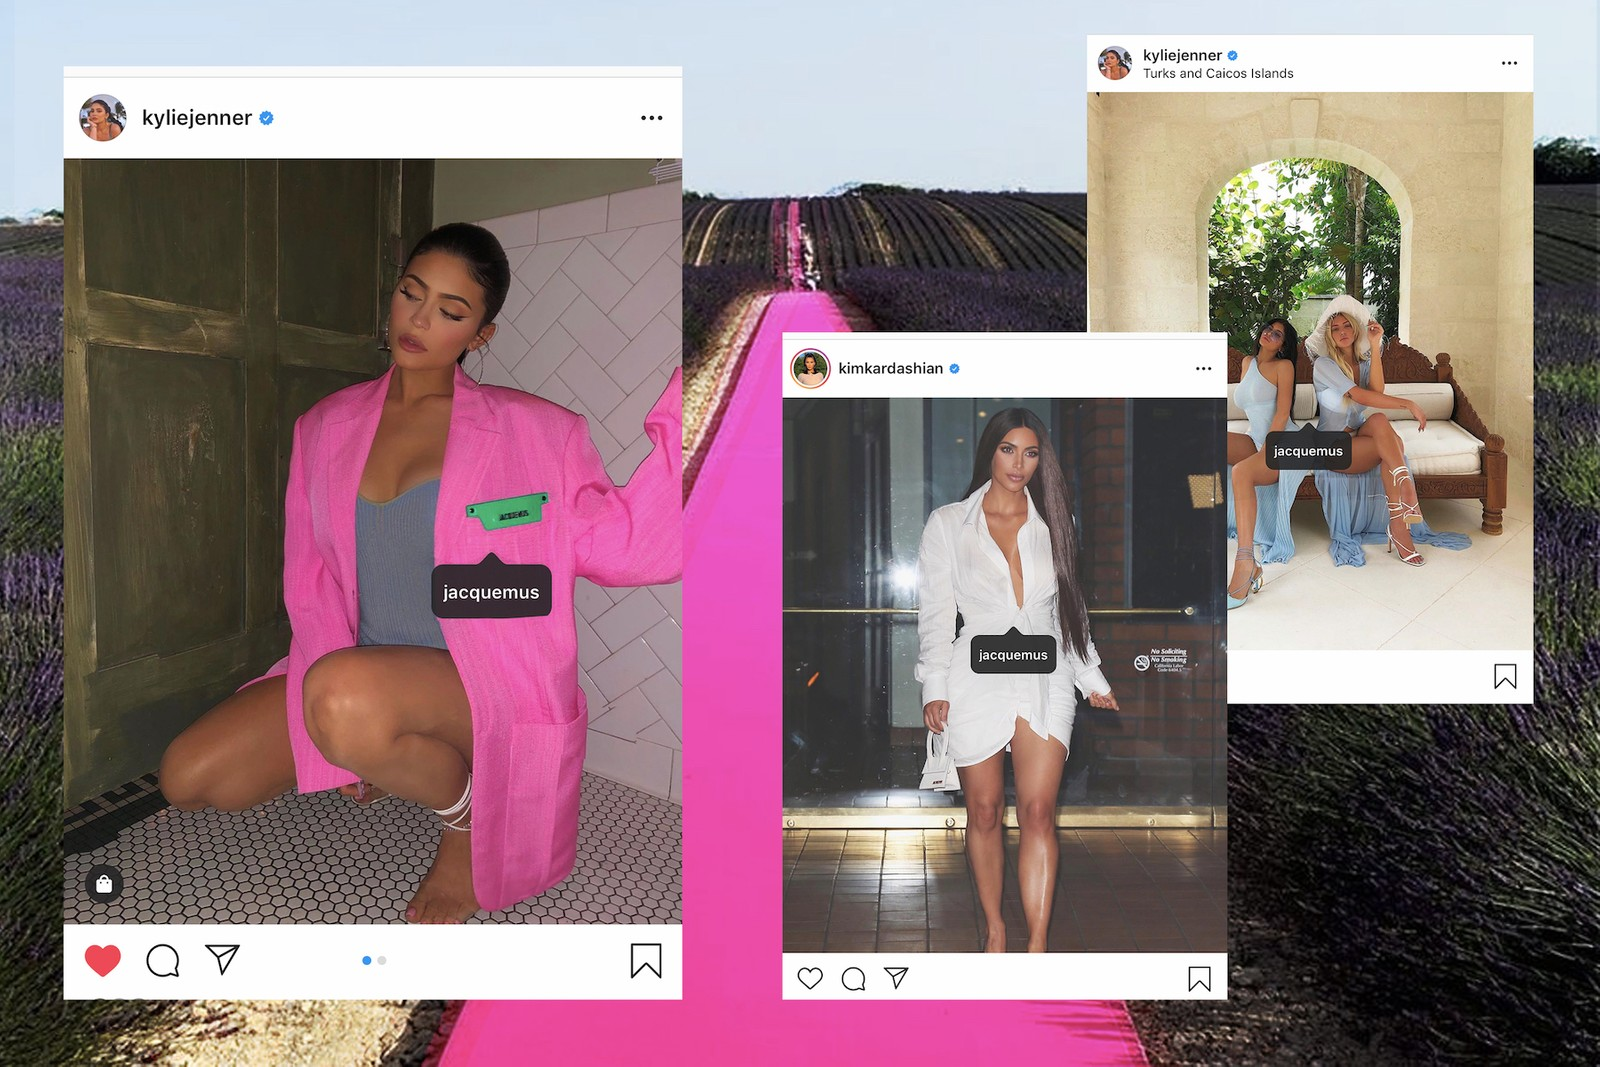 How Jacquemus Concquered the Internet Fashion Designer Trend Instagram Influencer La Bomba Le Petit Chiquito Mini Bag Hat Kylie Jenner Kim Kardashian Hailey Bieber Emily Ratajkowski